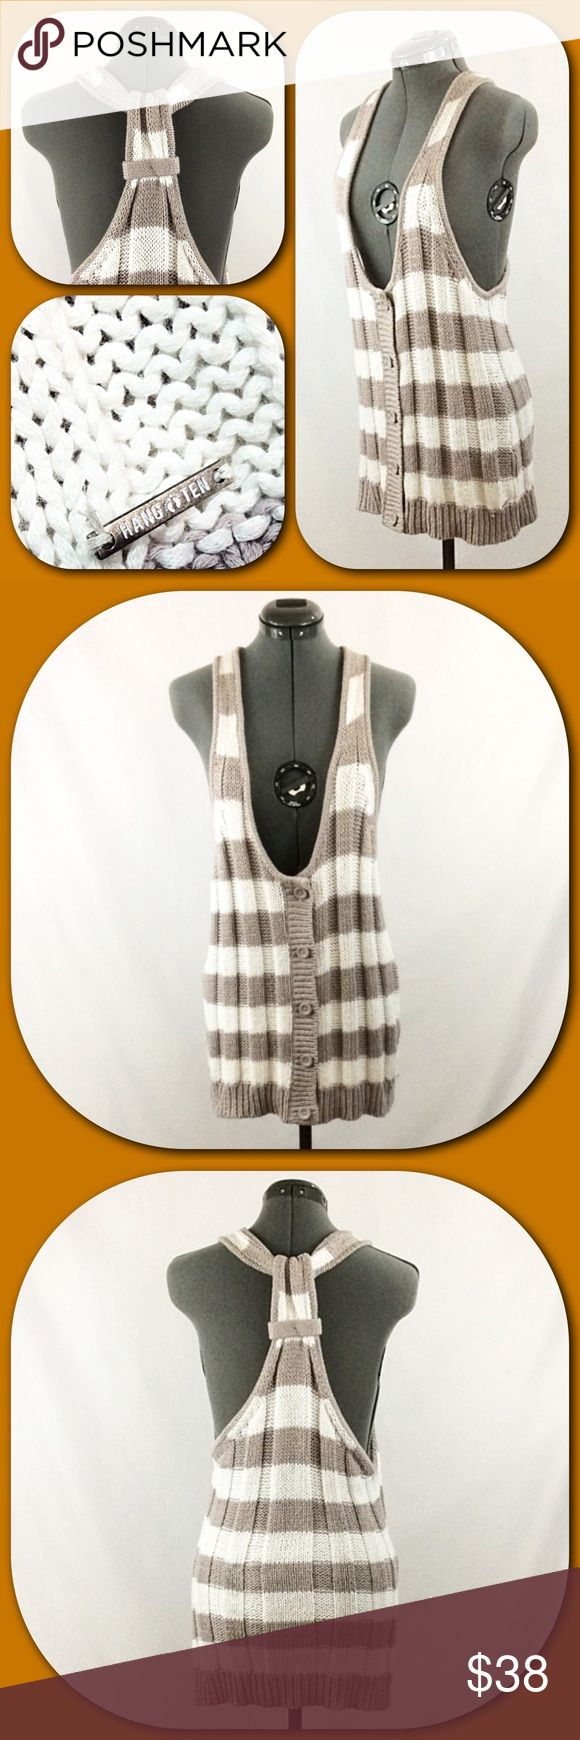 """Hang Ten 💕Taupe and White Stripe Sweater Vest💕 Hang Ten 💕Taupe and White Stripe Long Vest. Beautiful knit button front sweater vest. Large open arm-holes. Hang Ten signature hardware. Racer back. Size XL. EUC.💕  Fabric - 60% Cotton, 40% Acrylic   Measurements taken laying flat with no stretch.  Length - 29"""" shoulder to hem Hang Ten Jackets & Coats Vests"""